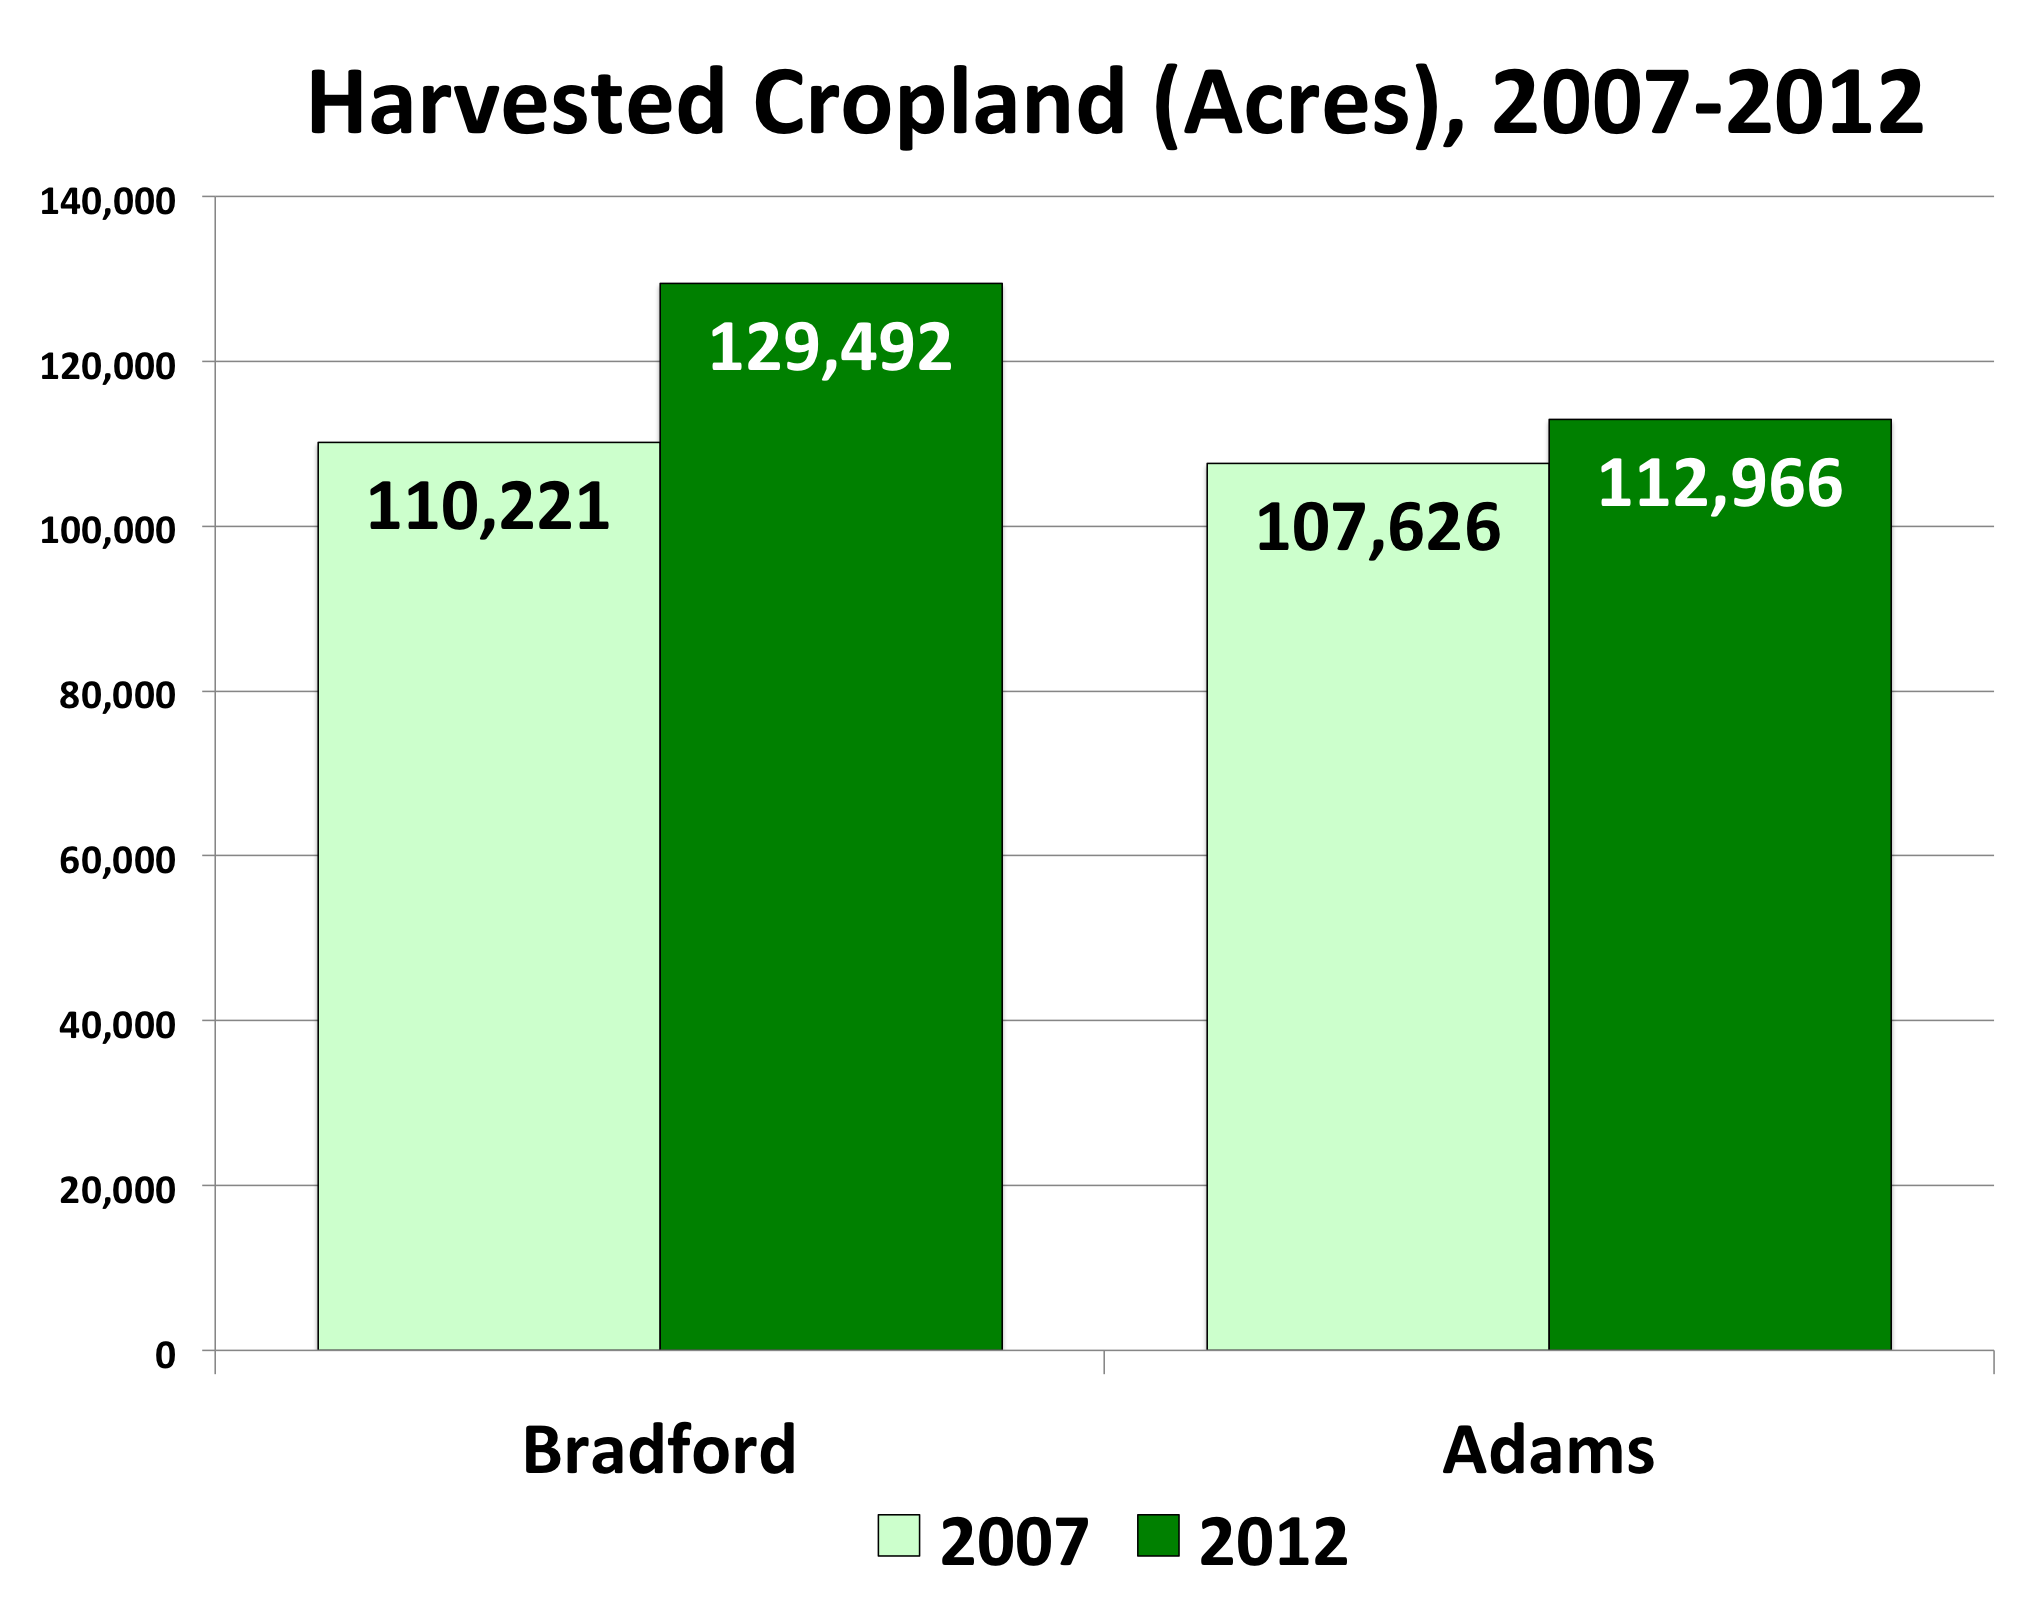 Bradford County Farms - Harvested Cropland